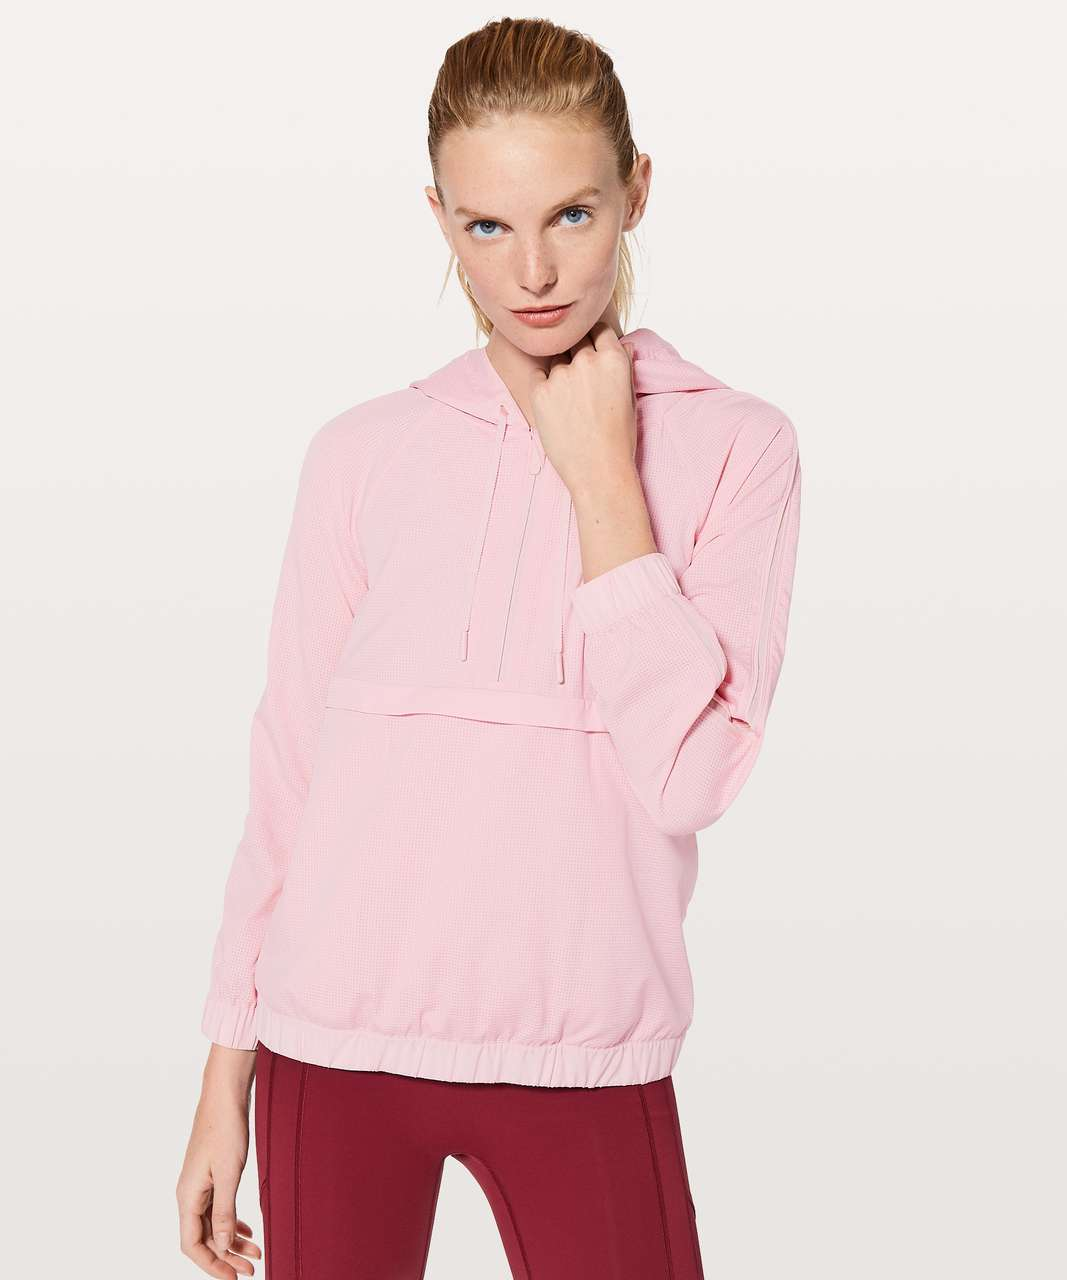 Lululemon Pack Light 1/2 Zip Pullover - Petals